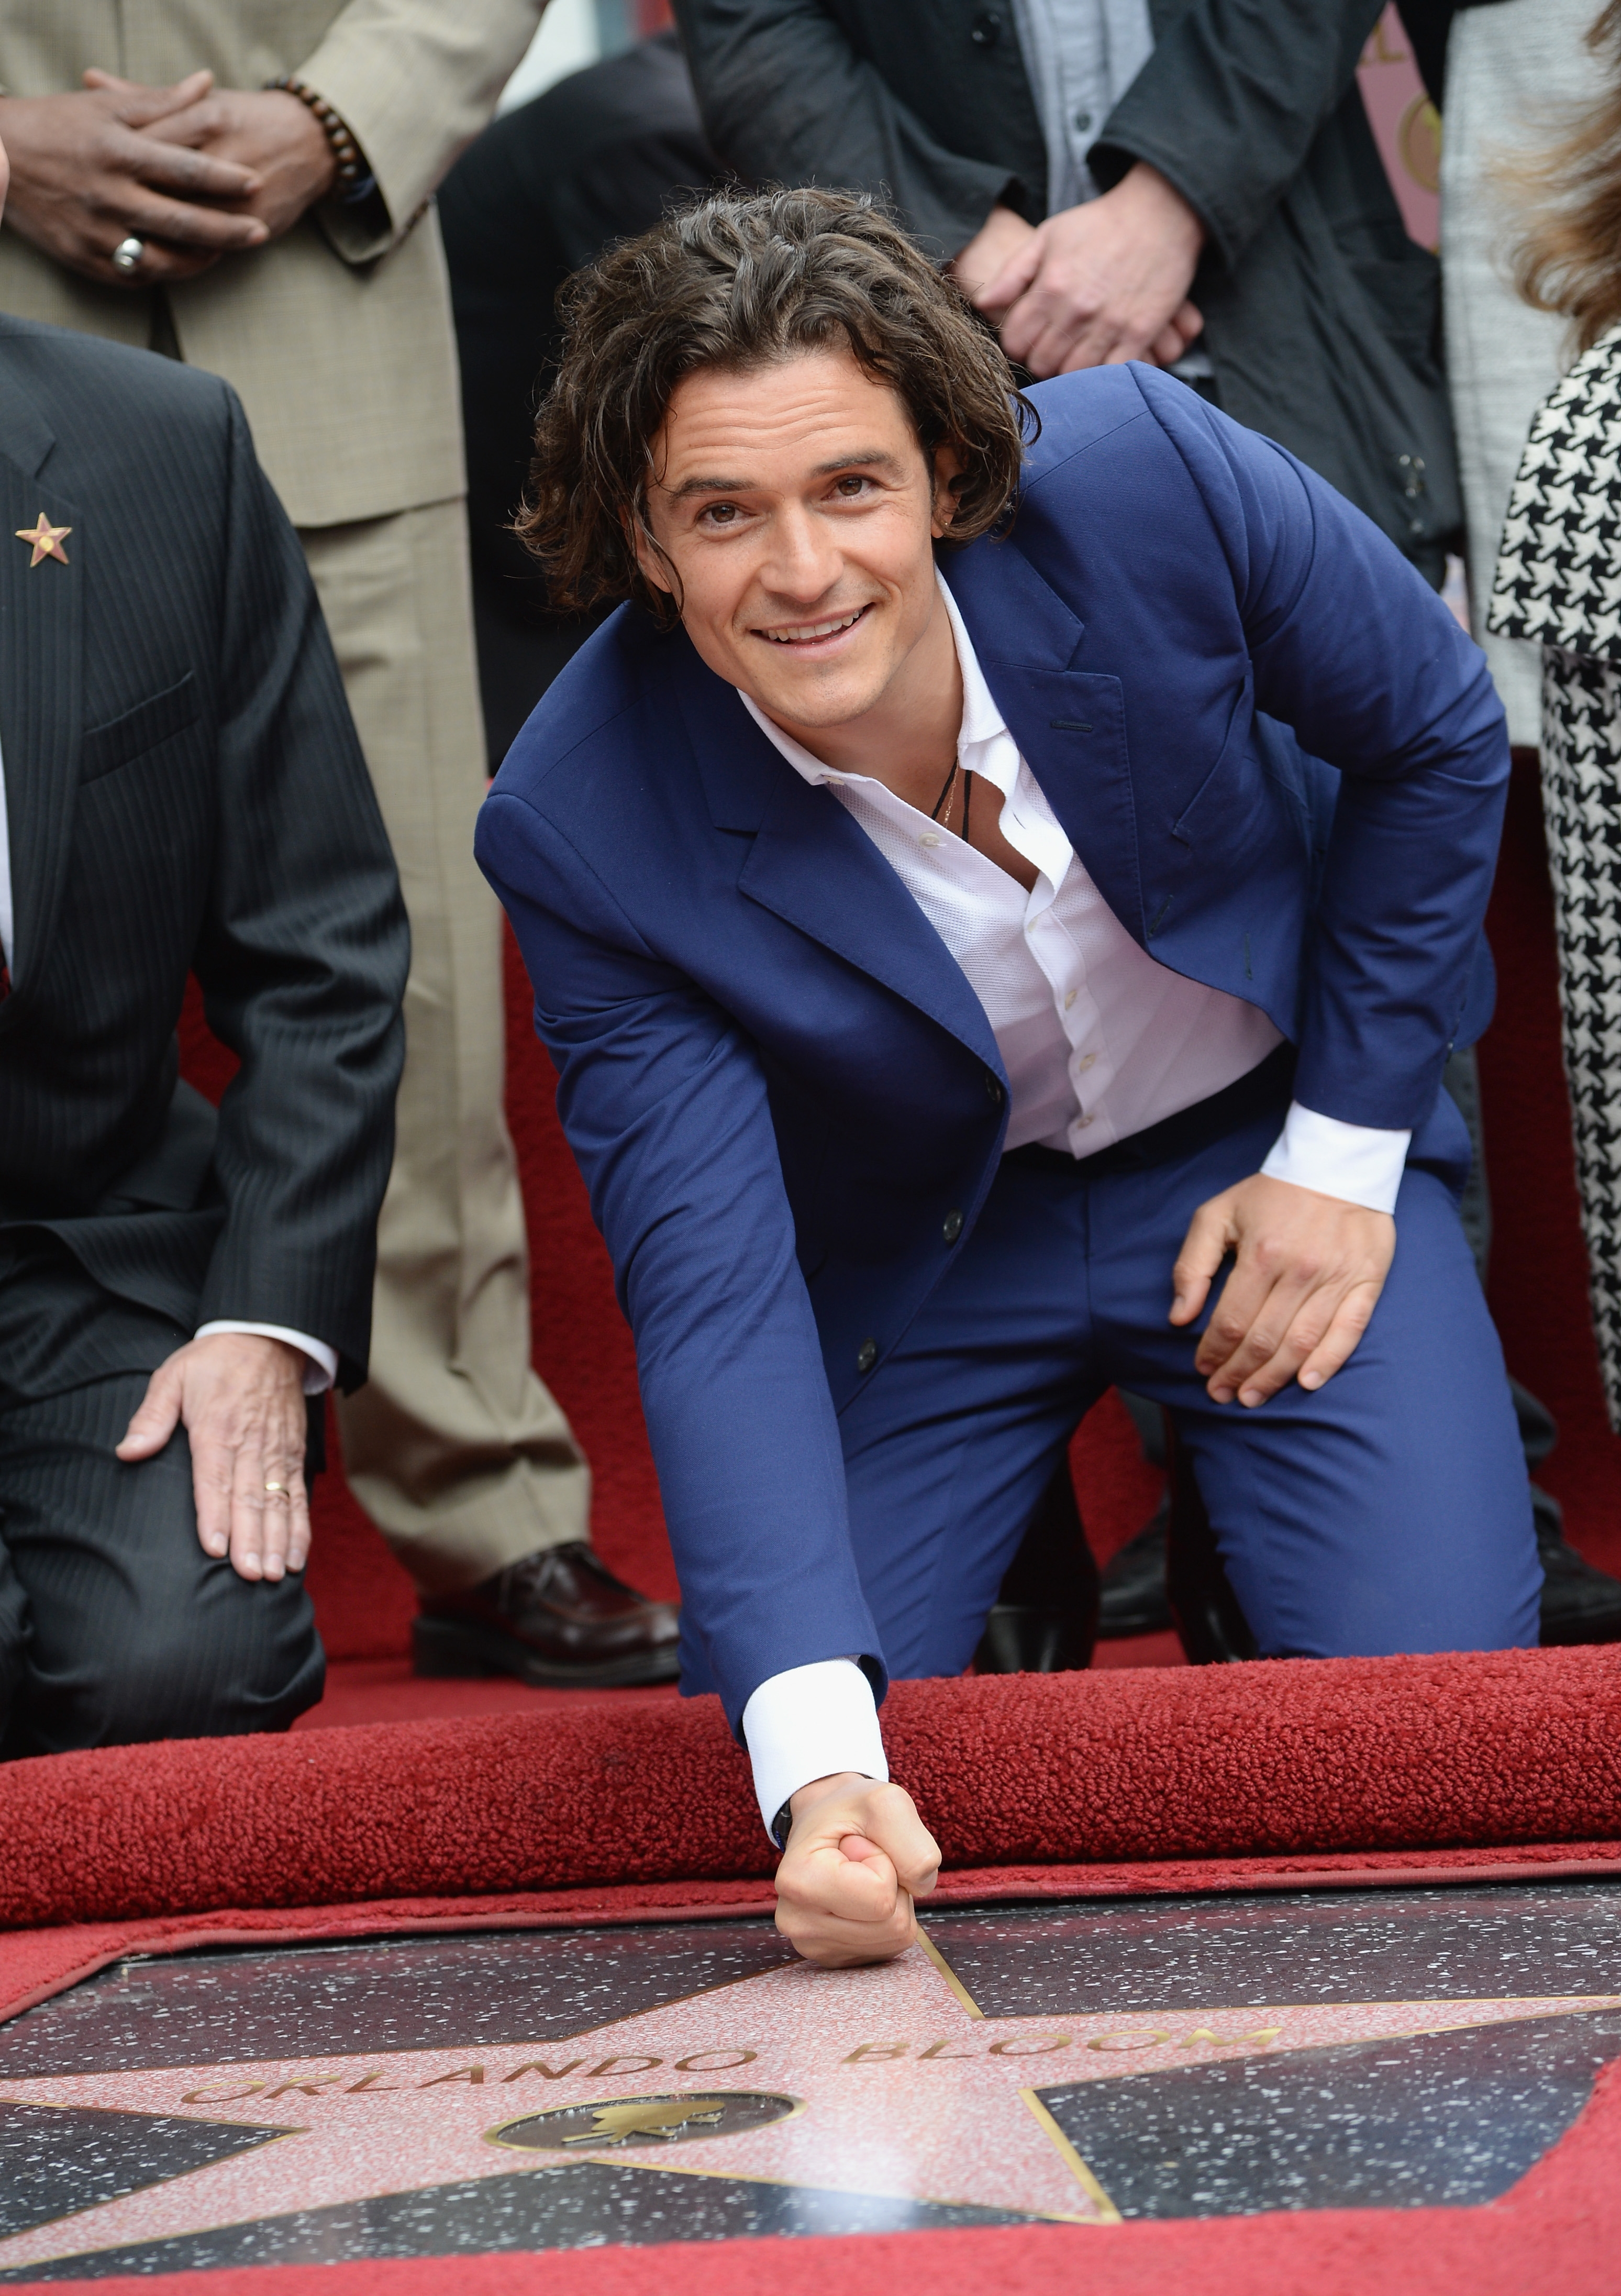 Stars in his eyes: Actor Orlando Bloom was the latest celebrity to be honored with a star on the Hollywood Walk of Fame on Wednesday.